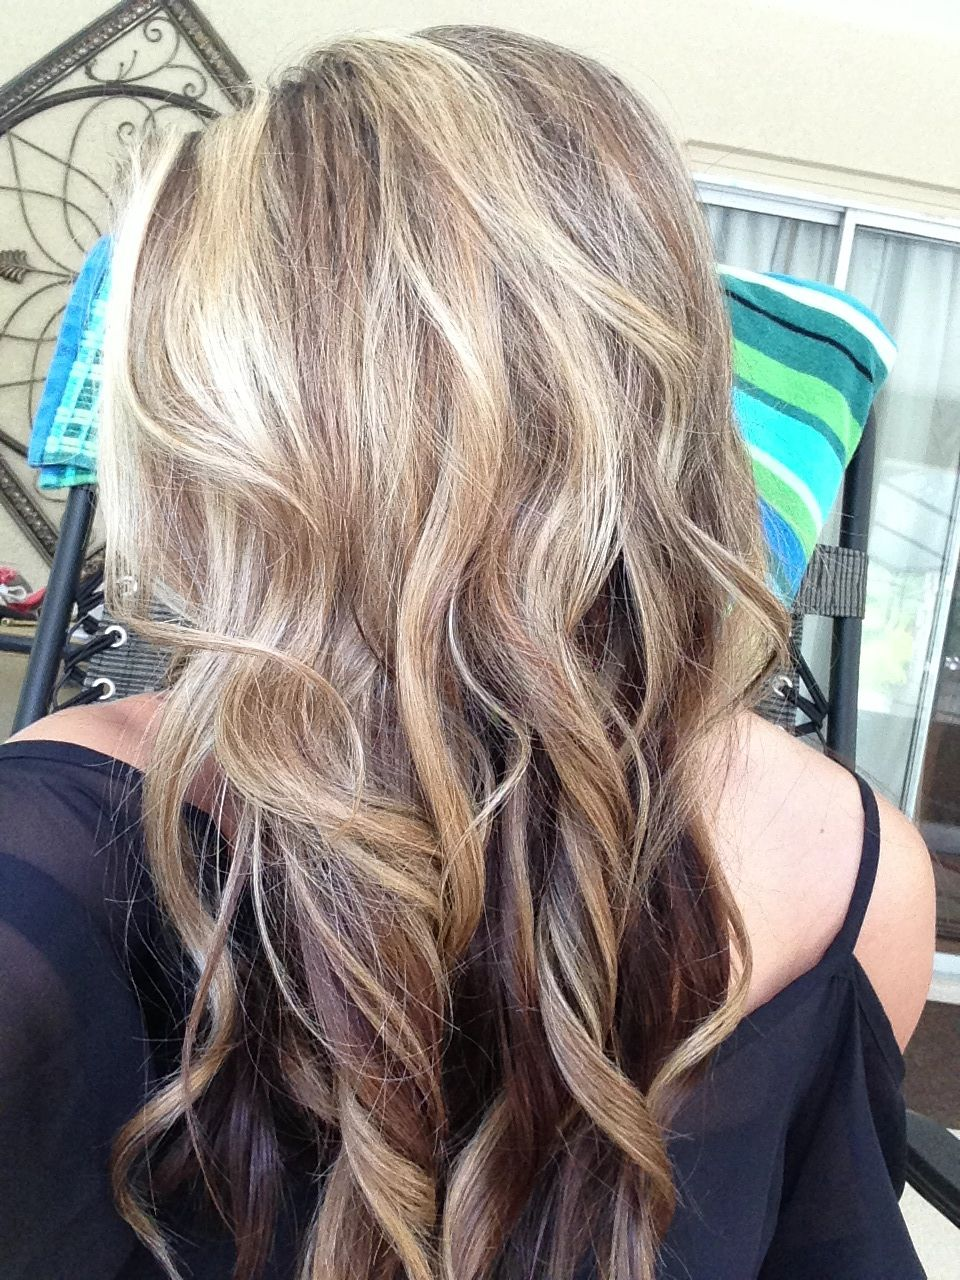 Pretty hair color if i decide to go darker and keep some blonde high